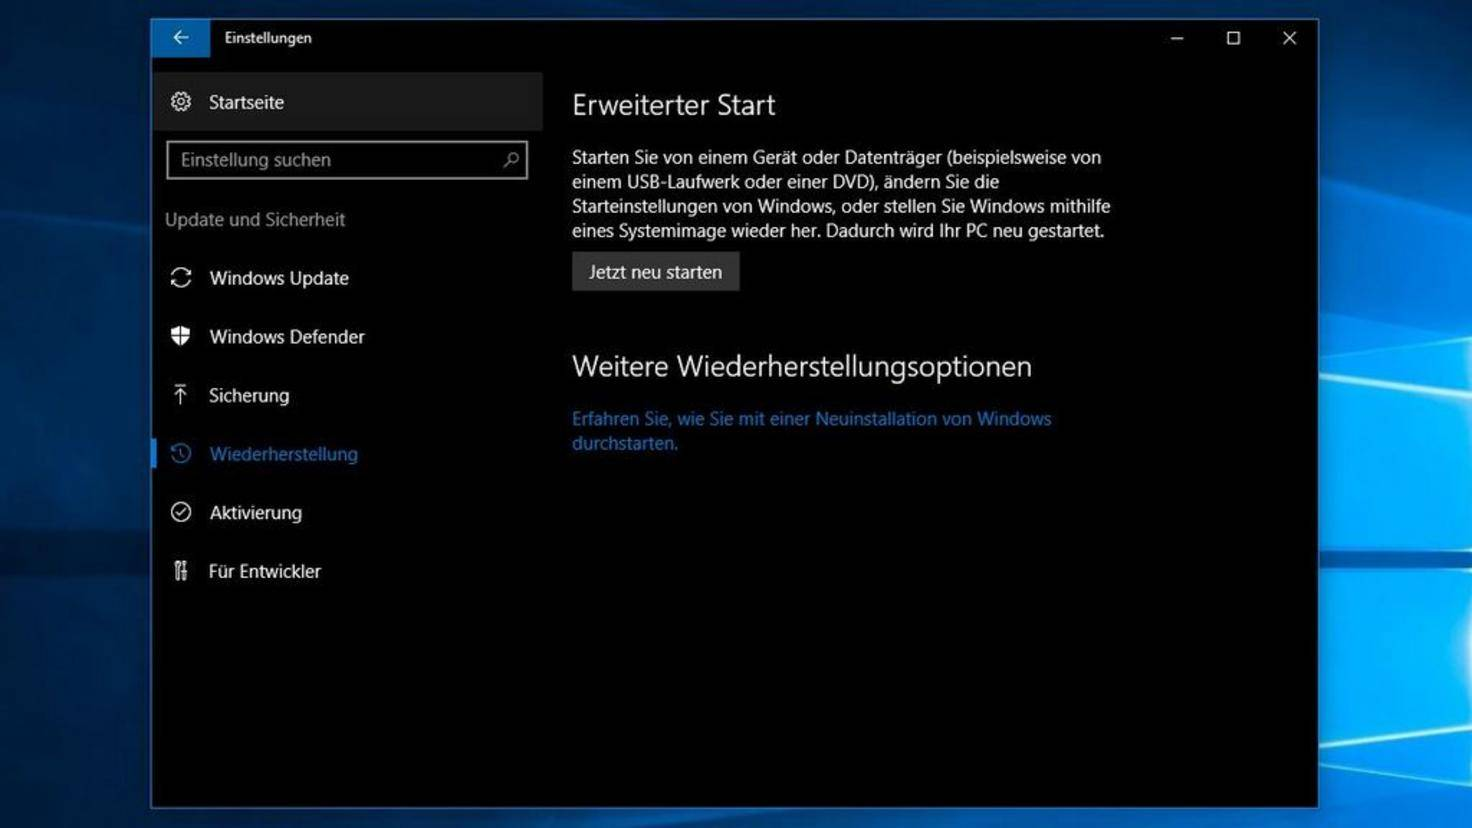 Erweiterter Start Windows